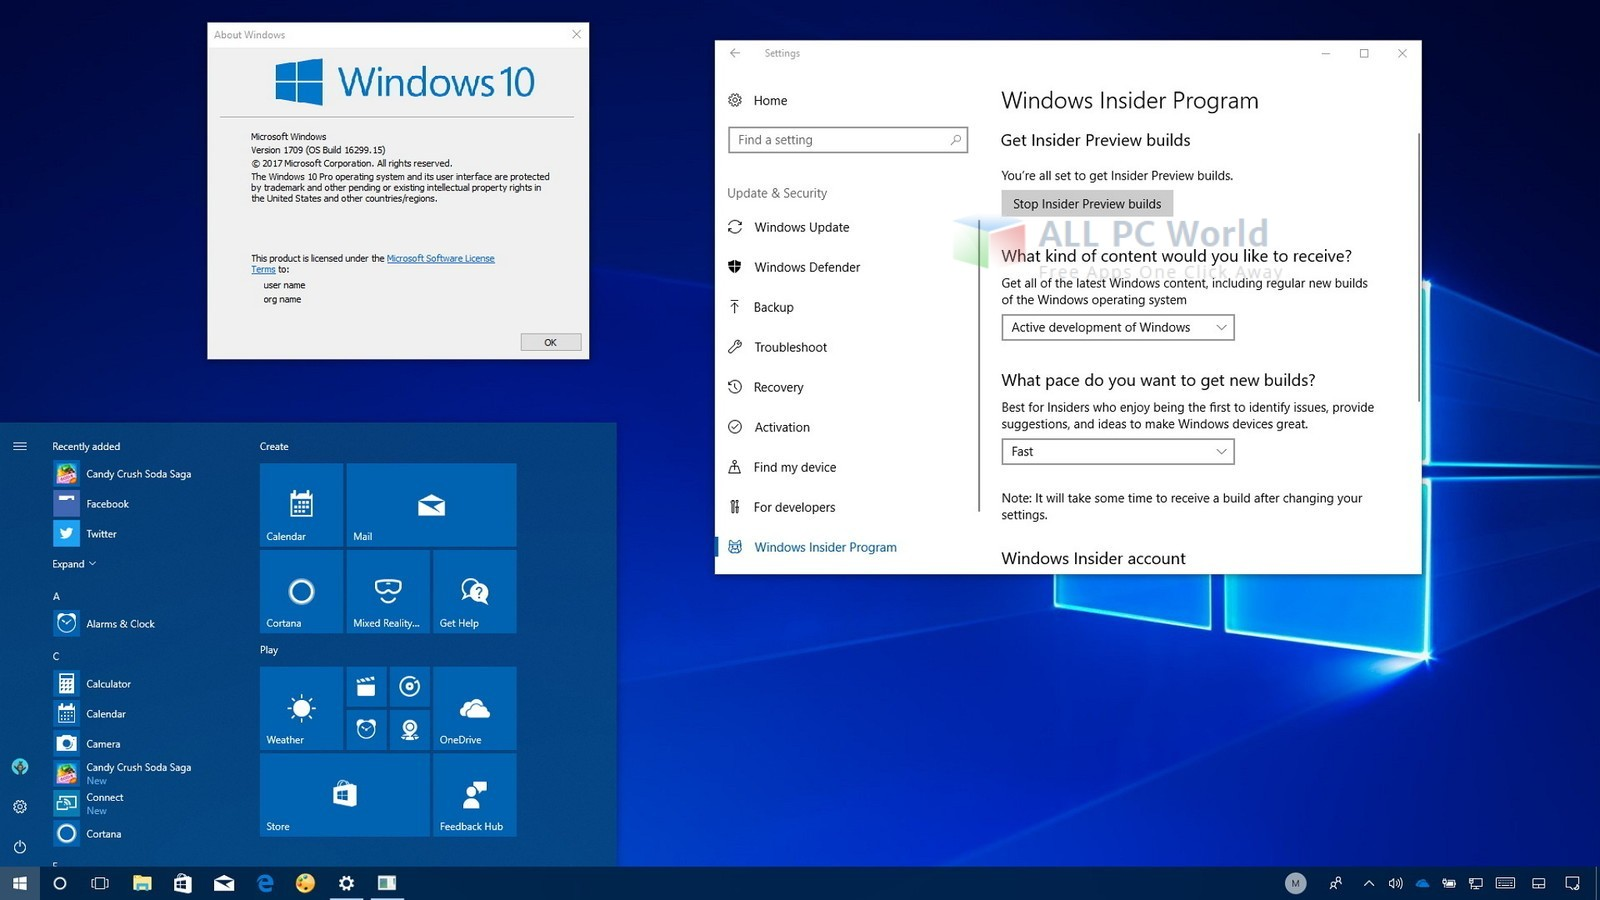 Download Windows 10 Pro v 1709 Free - ALL PC World